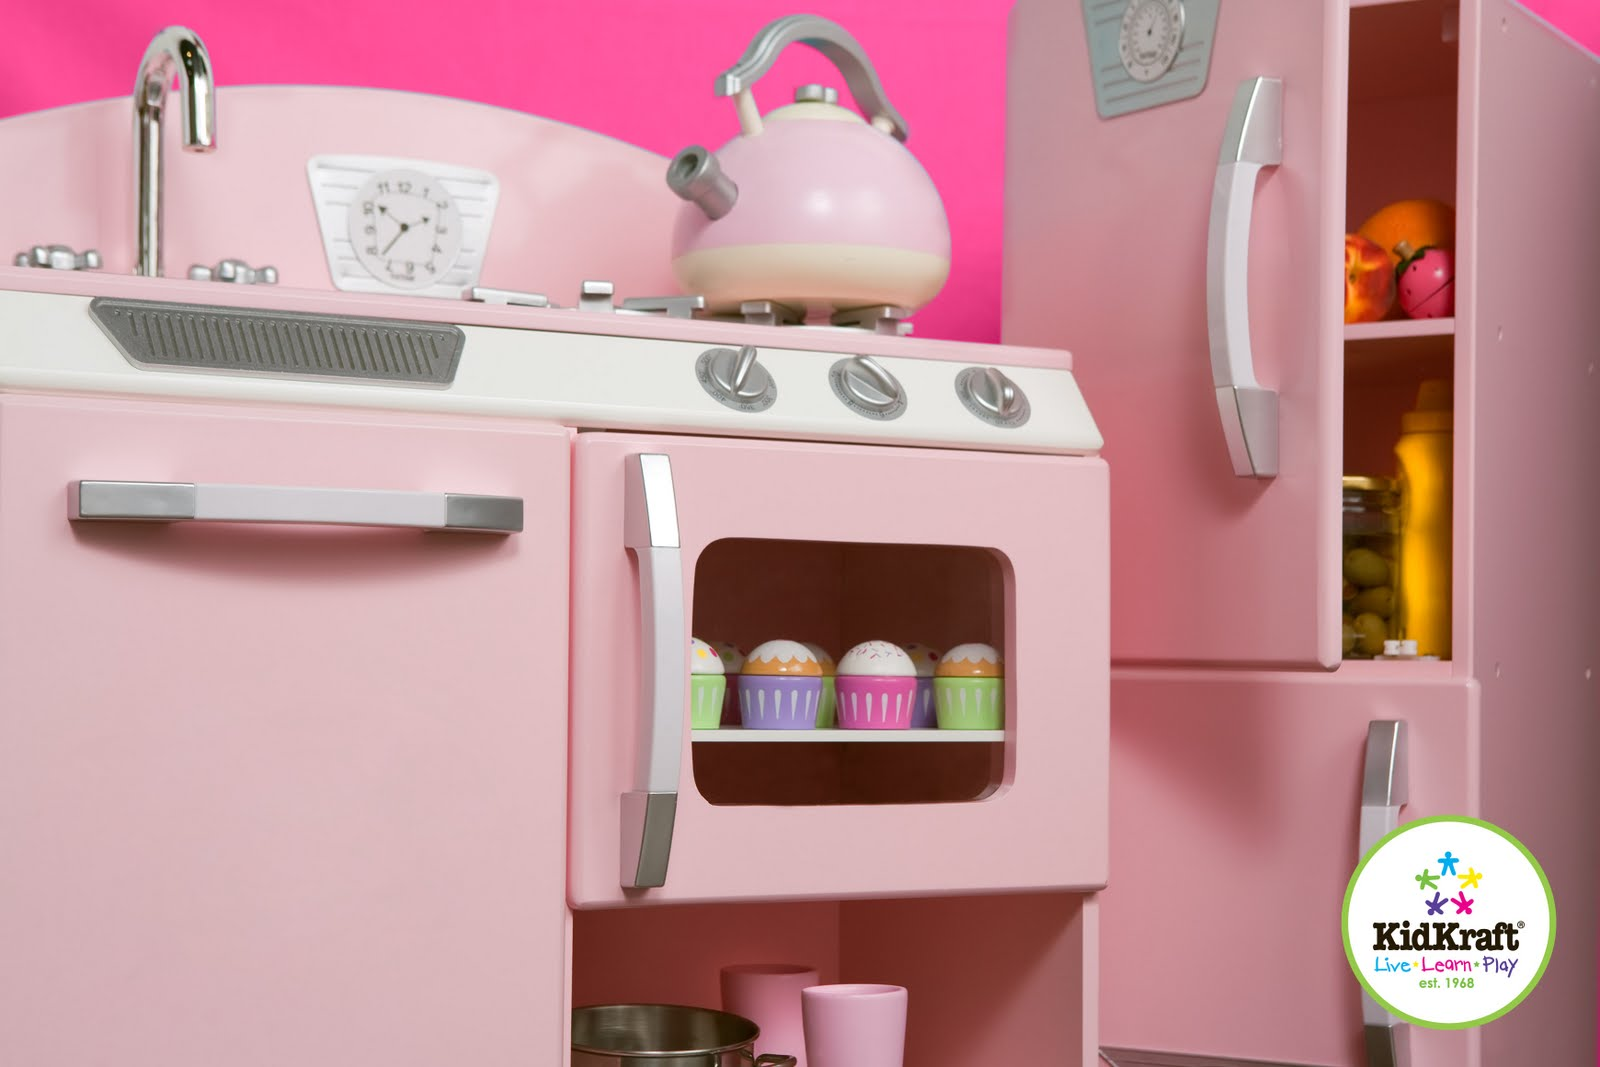 Kidkraft Pink Retro Kitchen & Refrigerator 53160 Floor Tile Ideas Toys And Furniture Spotted In